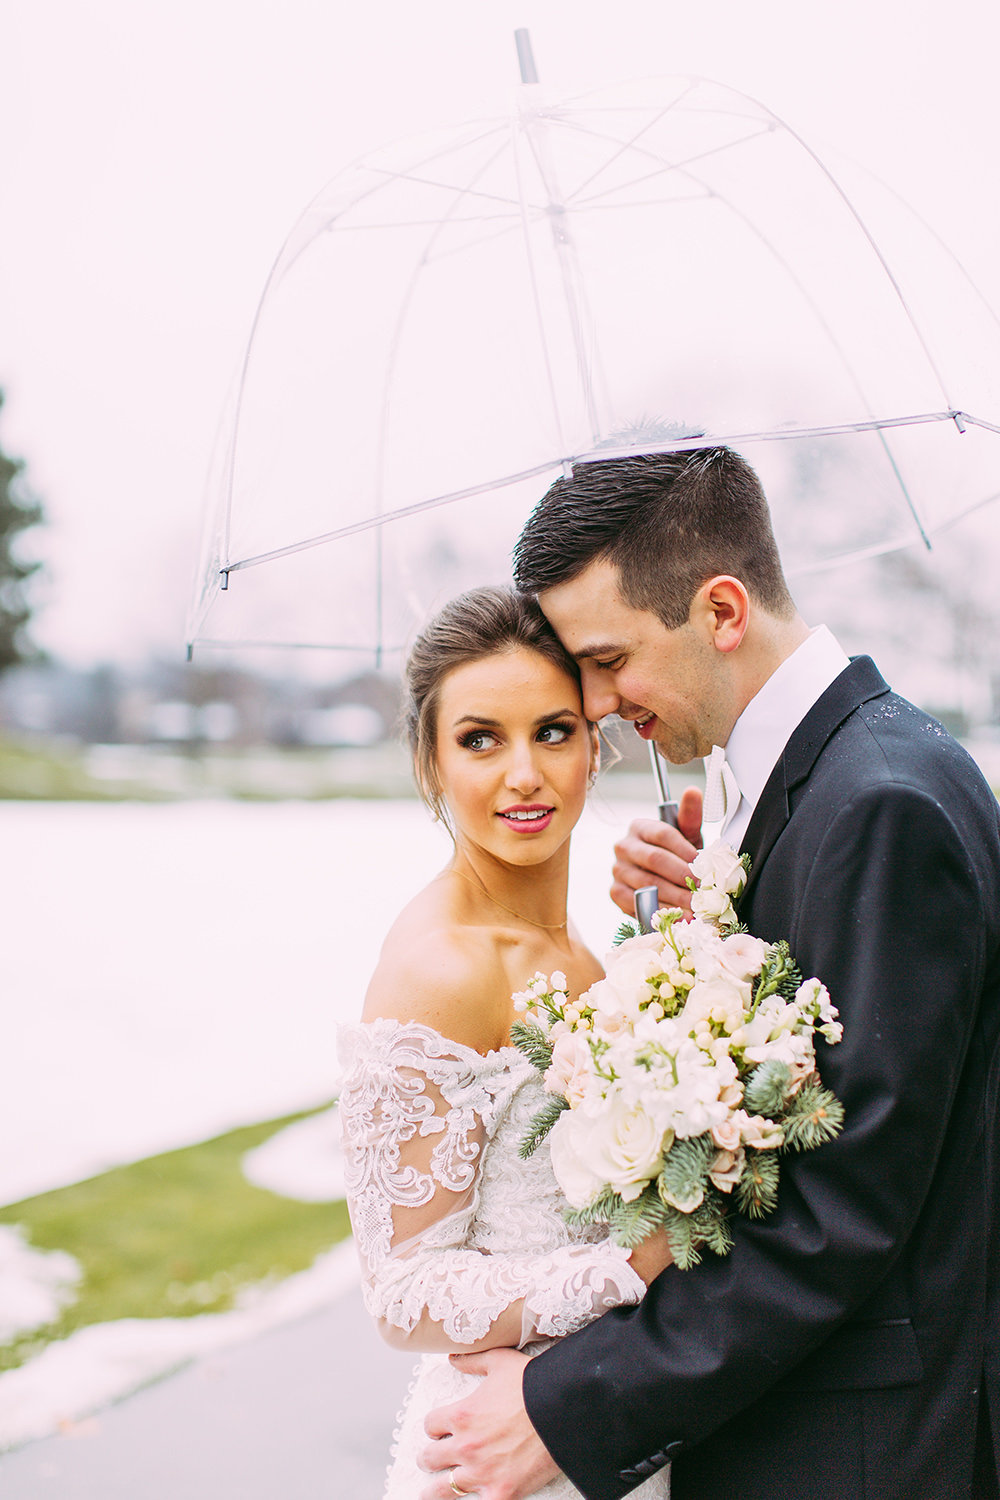 Bride and groom under umbrella in rainy wedding photo by Samantha rice